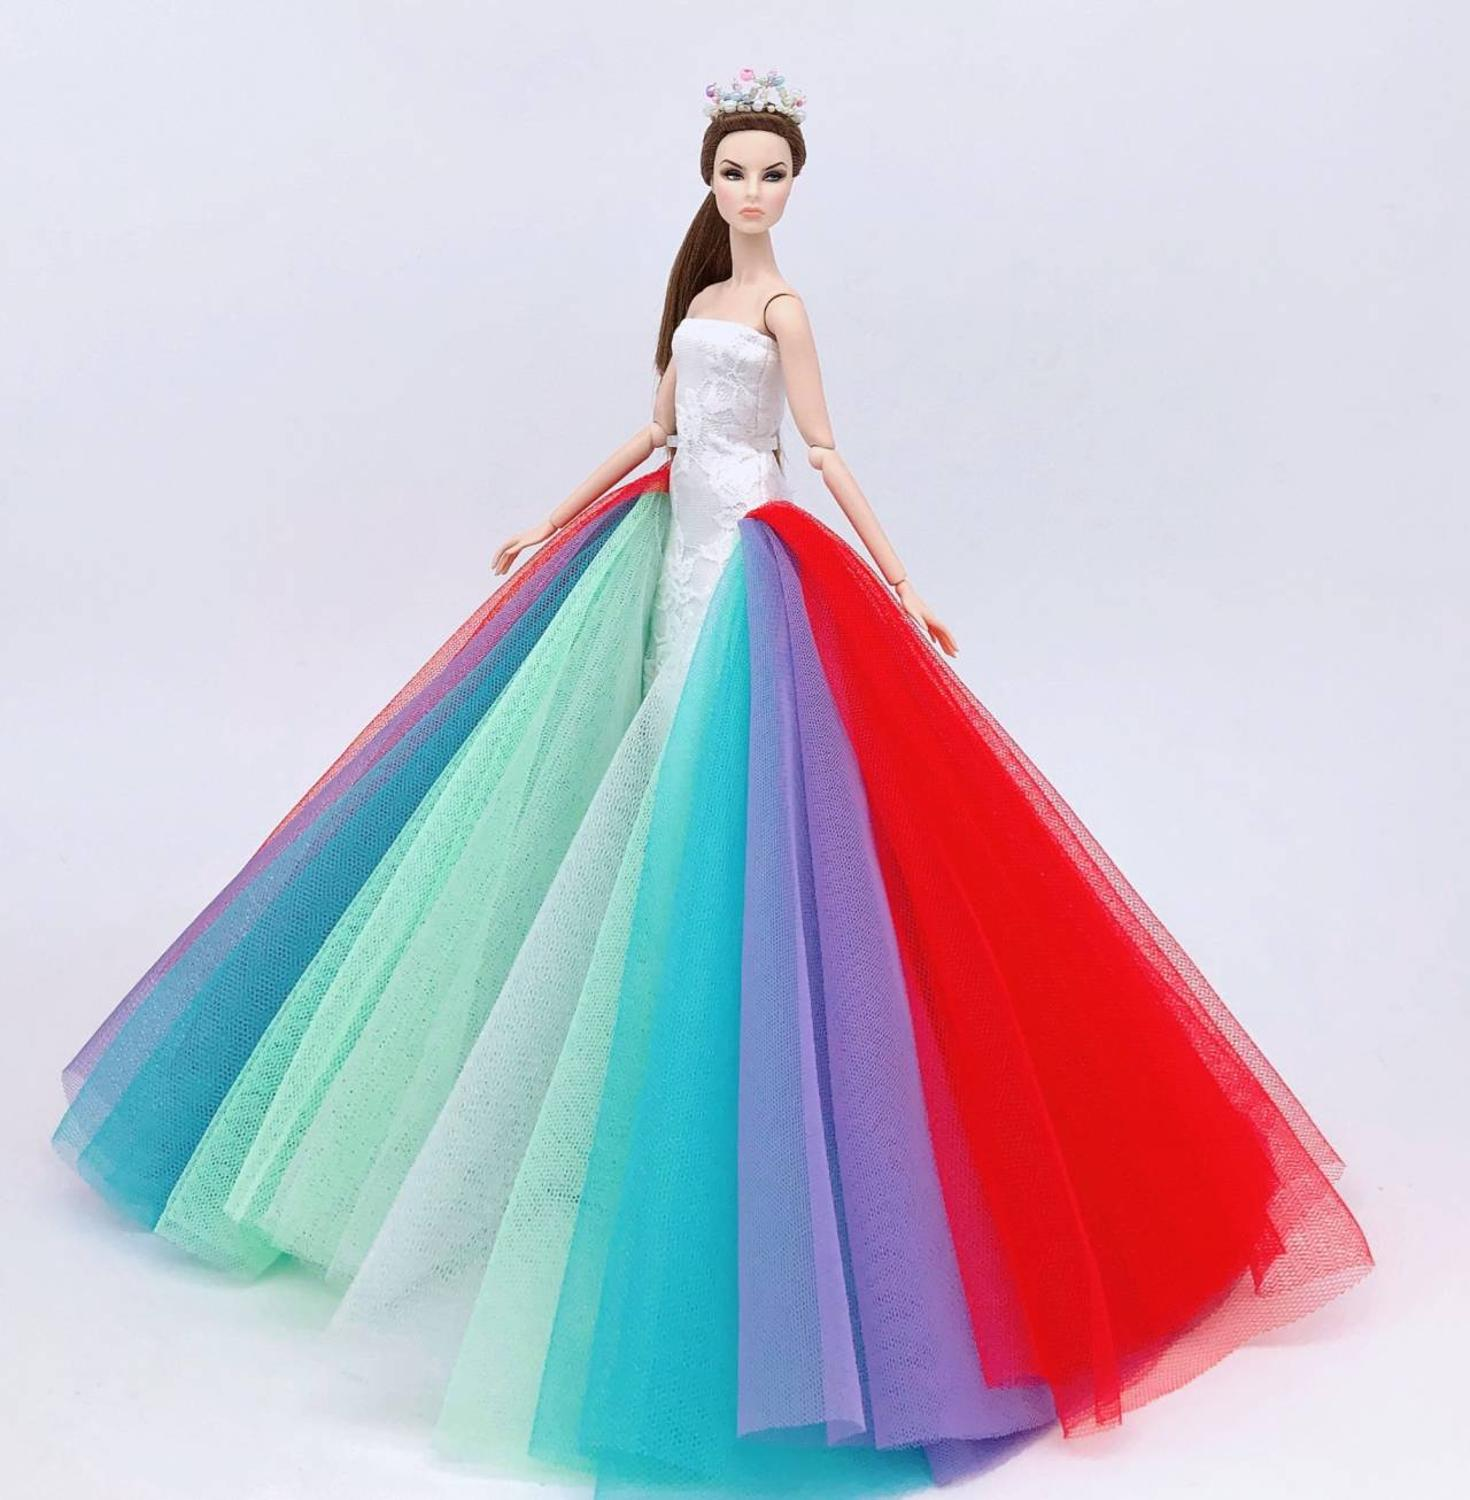 Genuine For Princess Clothes Barbie Doll Dress Bjd 1/6 Doll Accessories Clothing Party Gown Barbie Wedding Dress